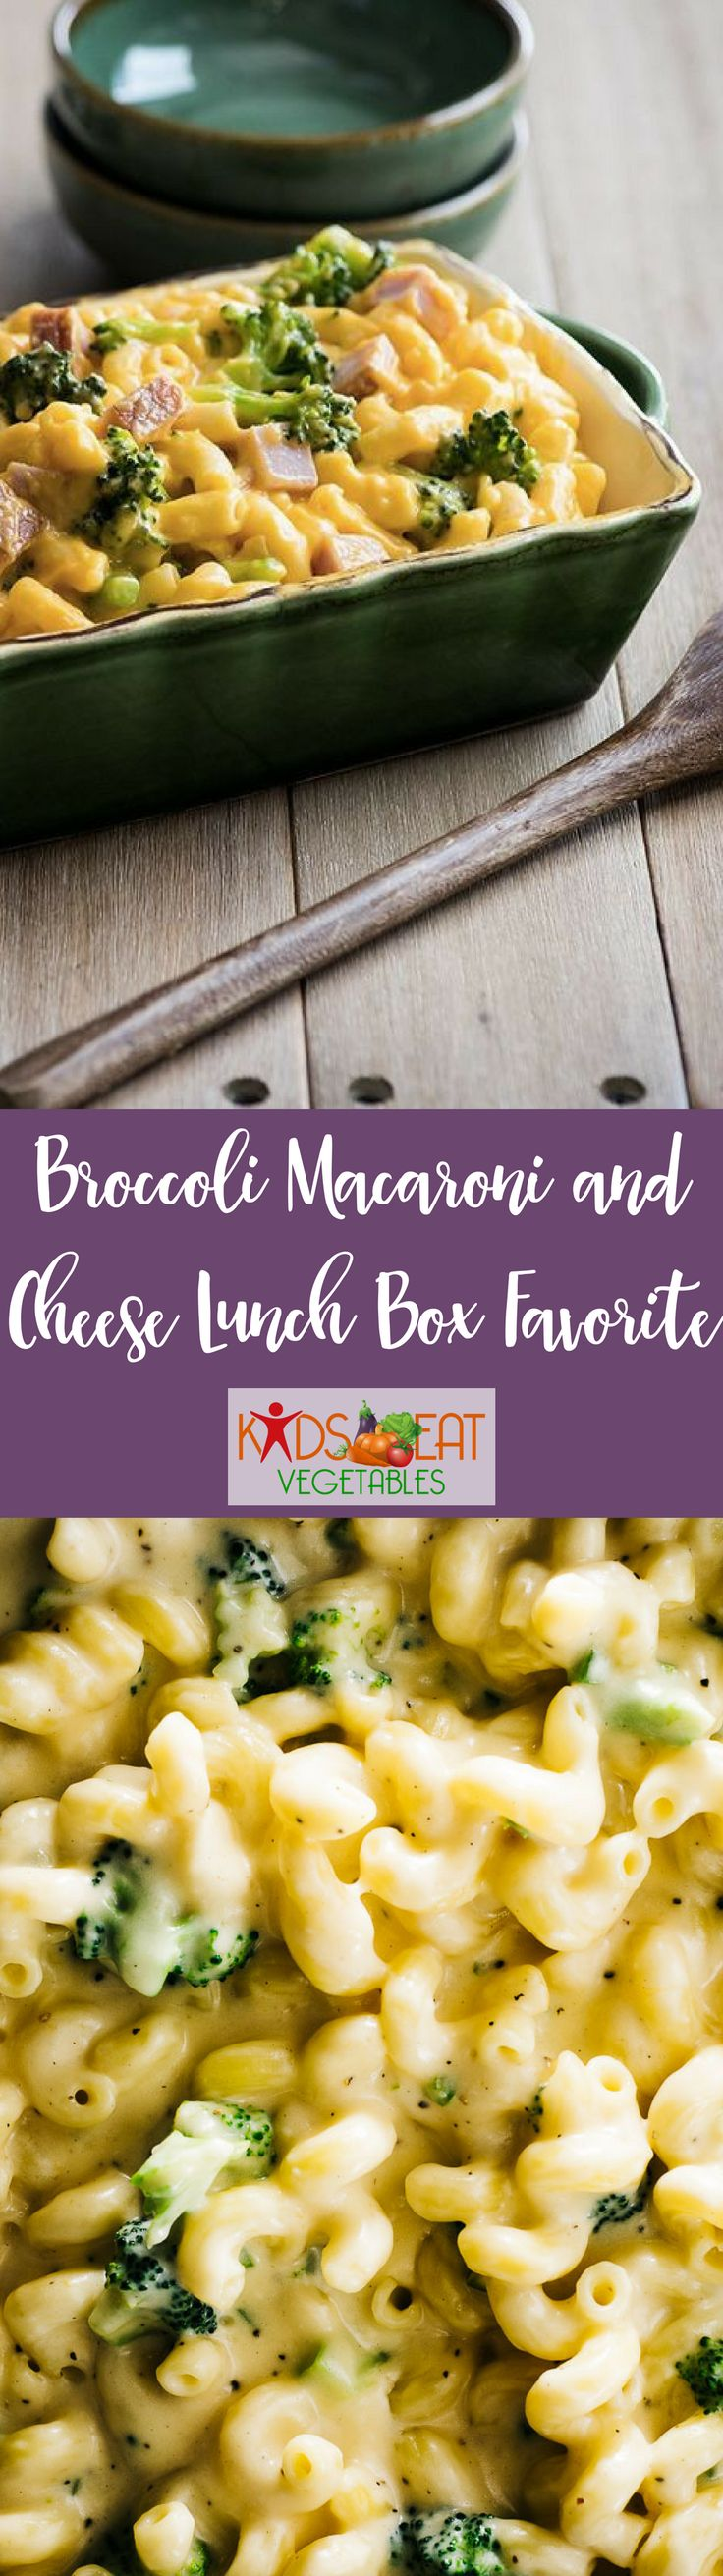 A healthy lunch is so important and this recipe for Broccoli Macaroni and Cheese is sure to be a lunch box favorite. Healthy and easy! Here is the perfect thermos to pack this lunch box favorite. Combine with a fruit, carrot sticks, a small treat and wate